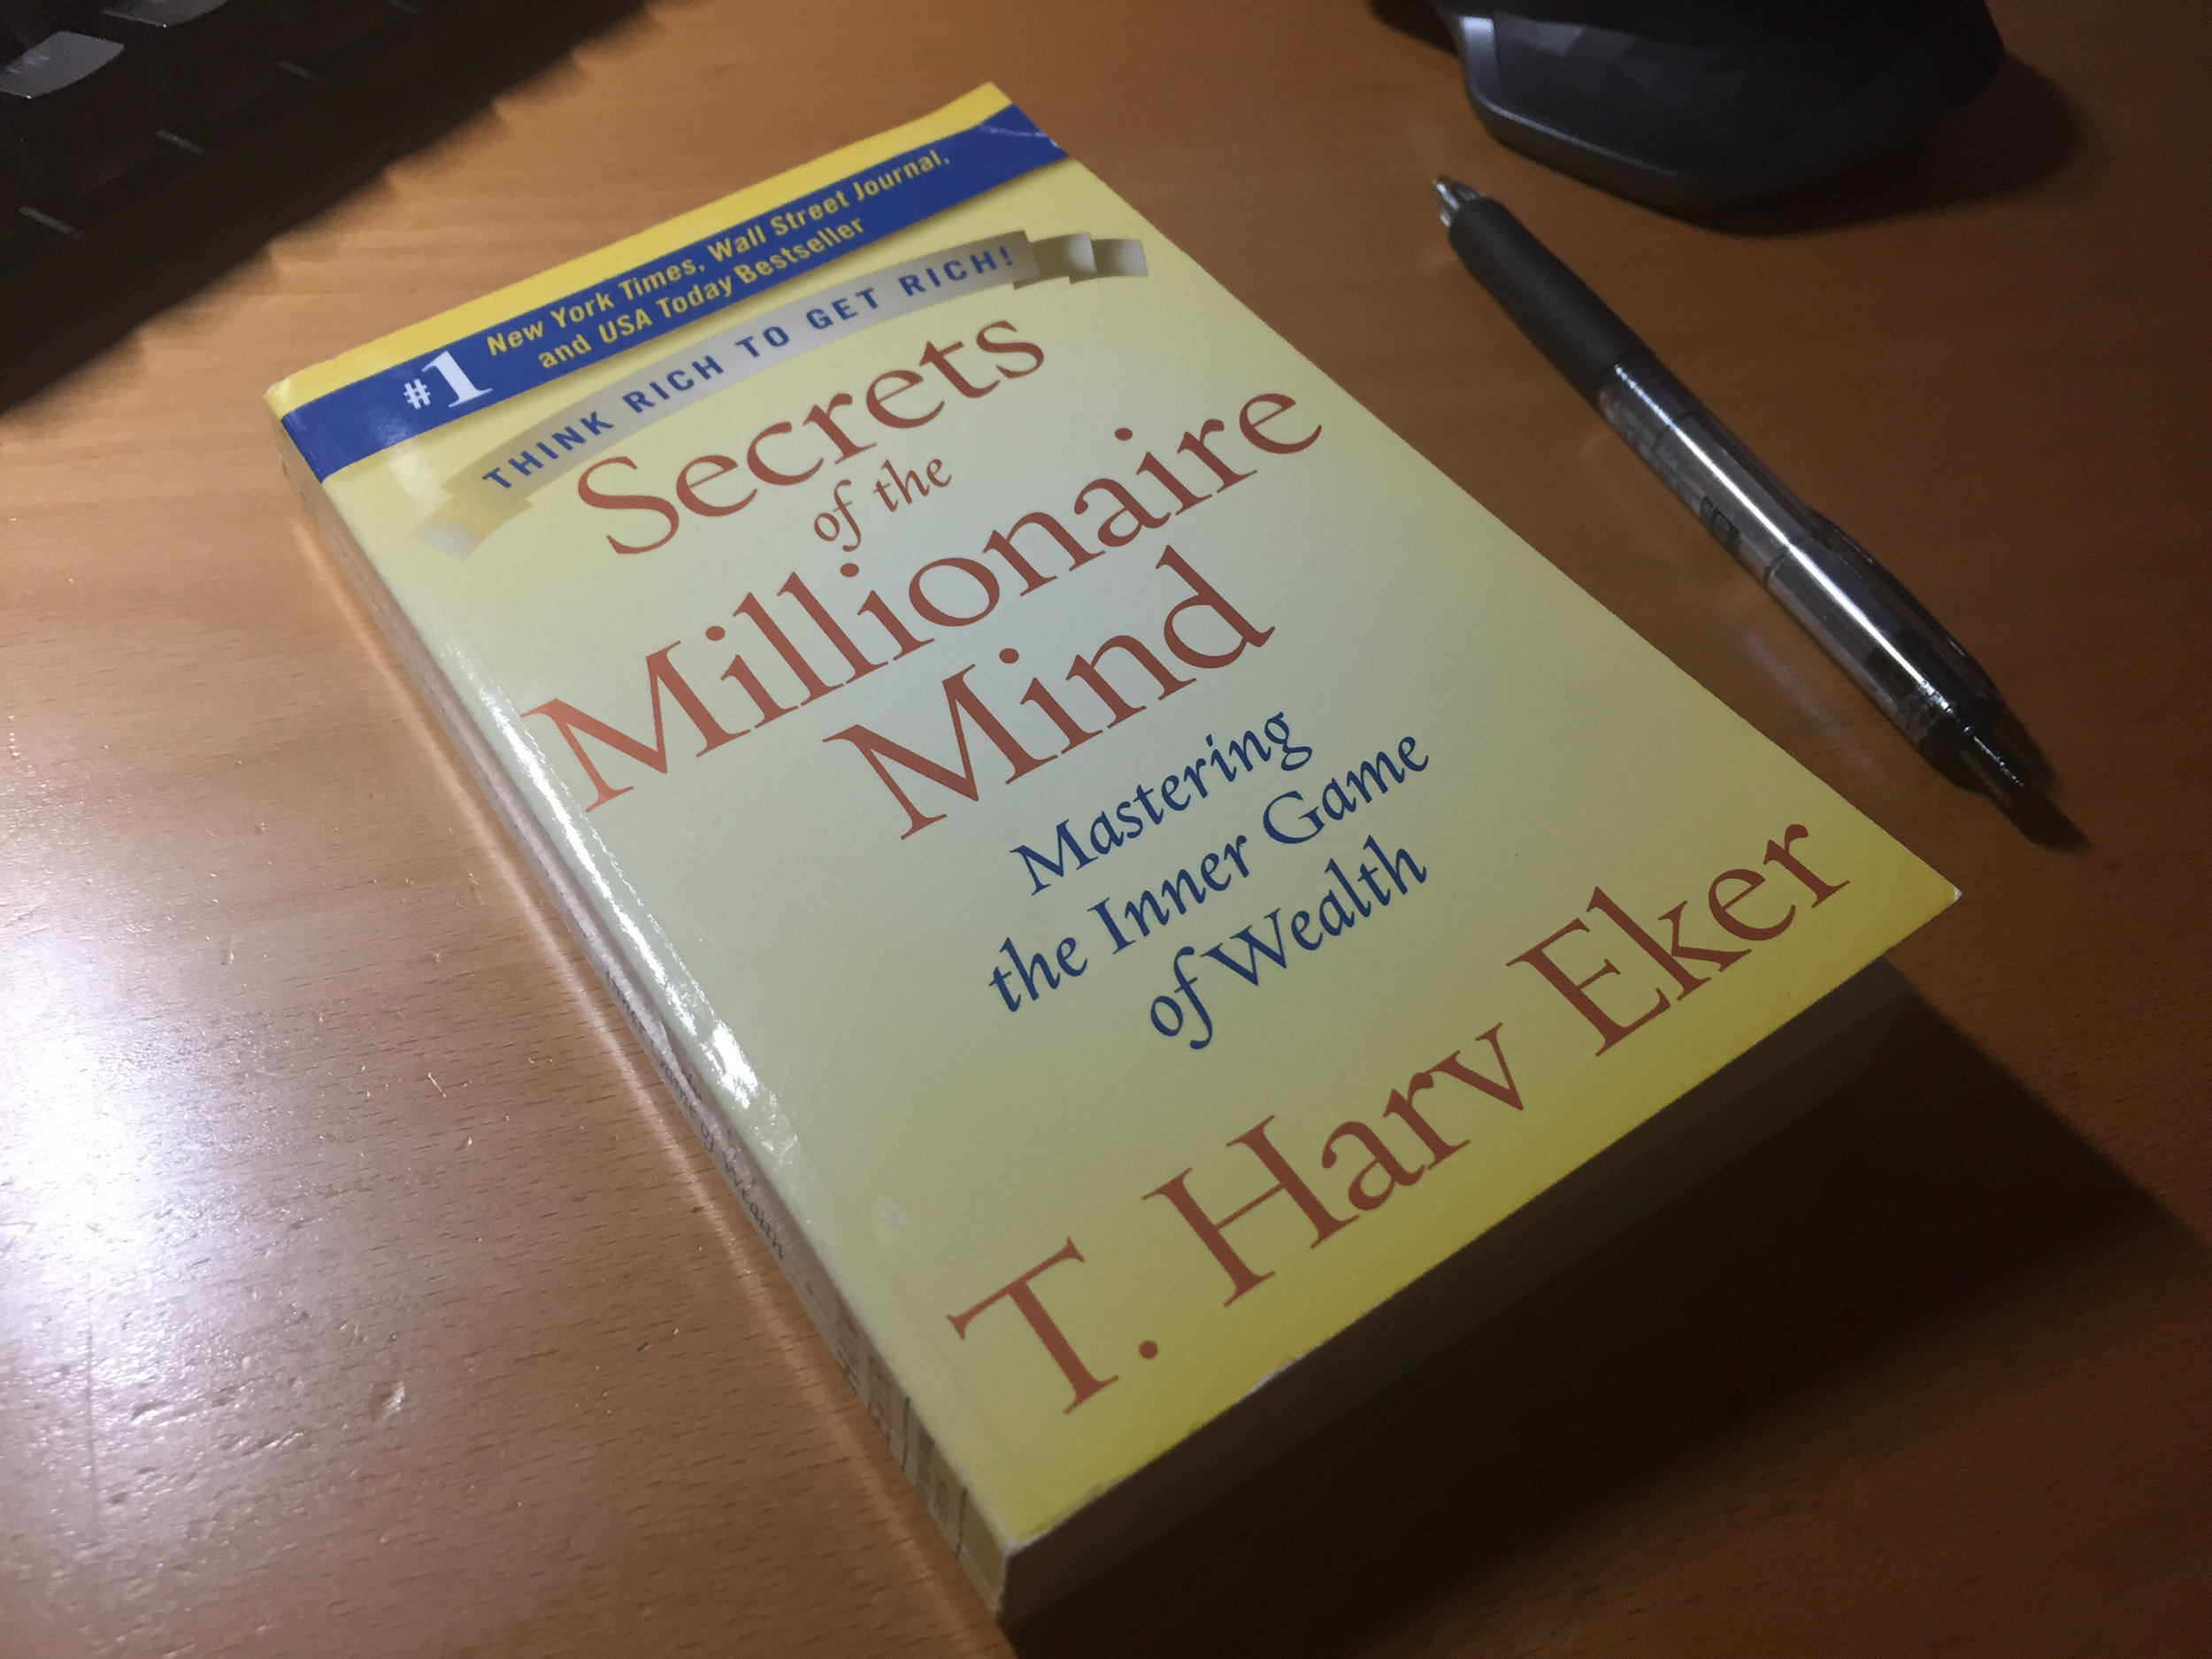 This book helped manage my entire life!